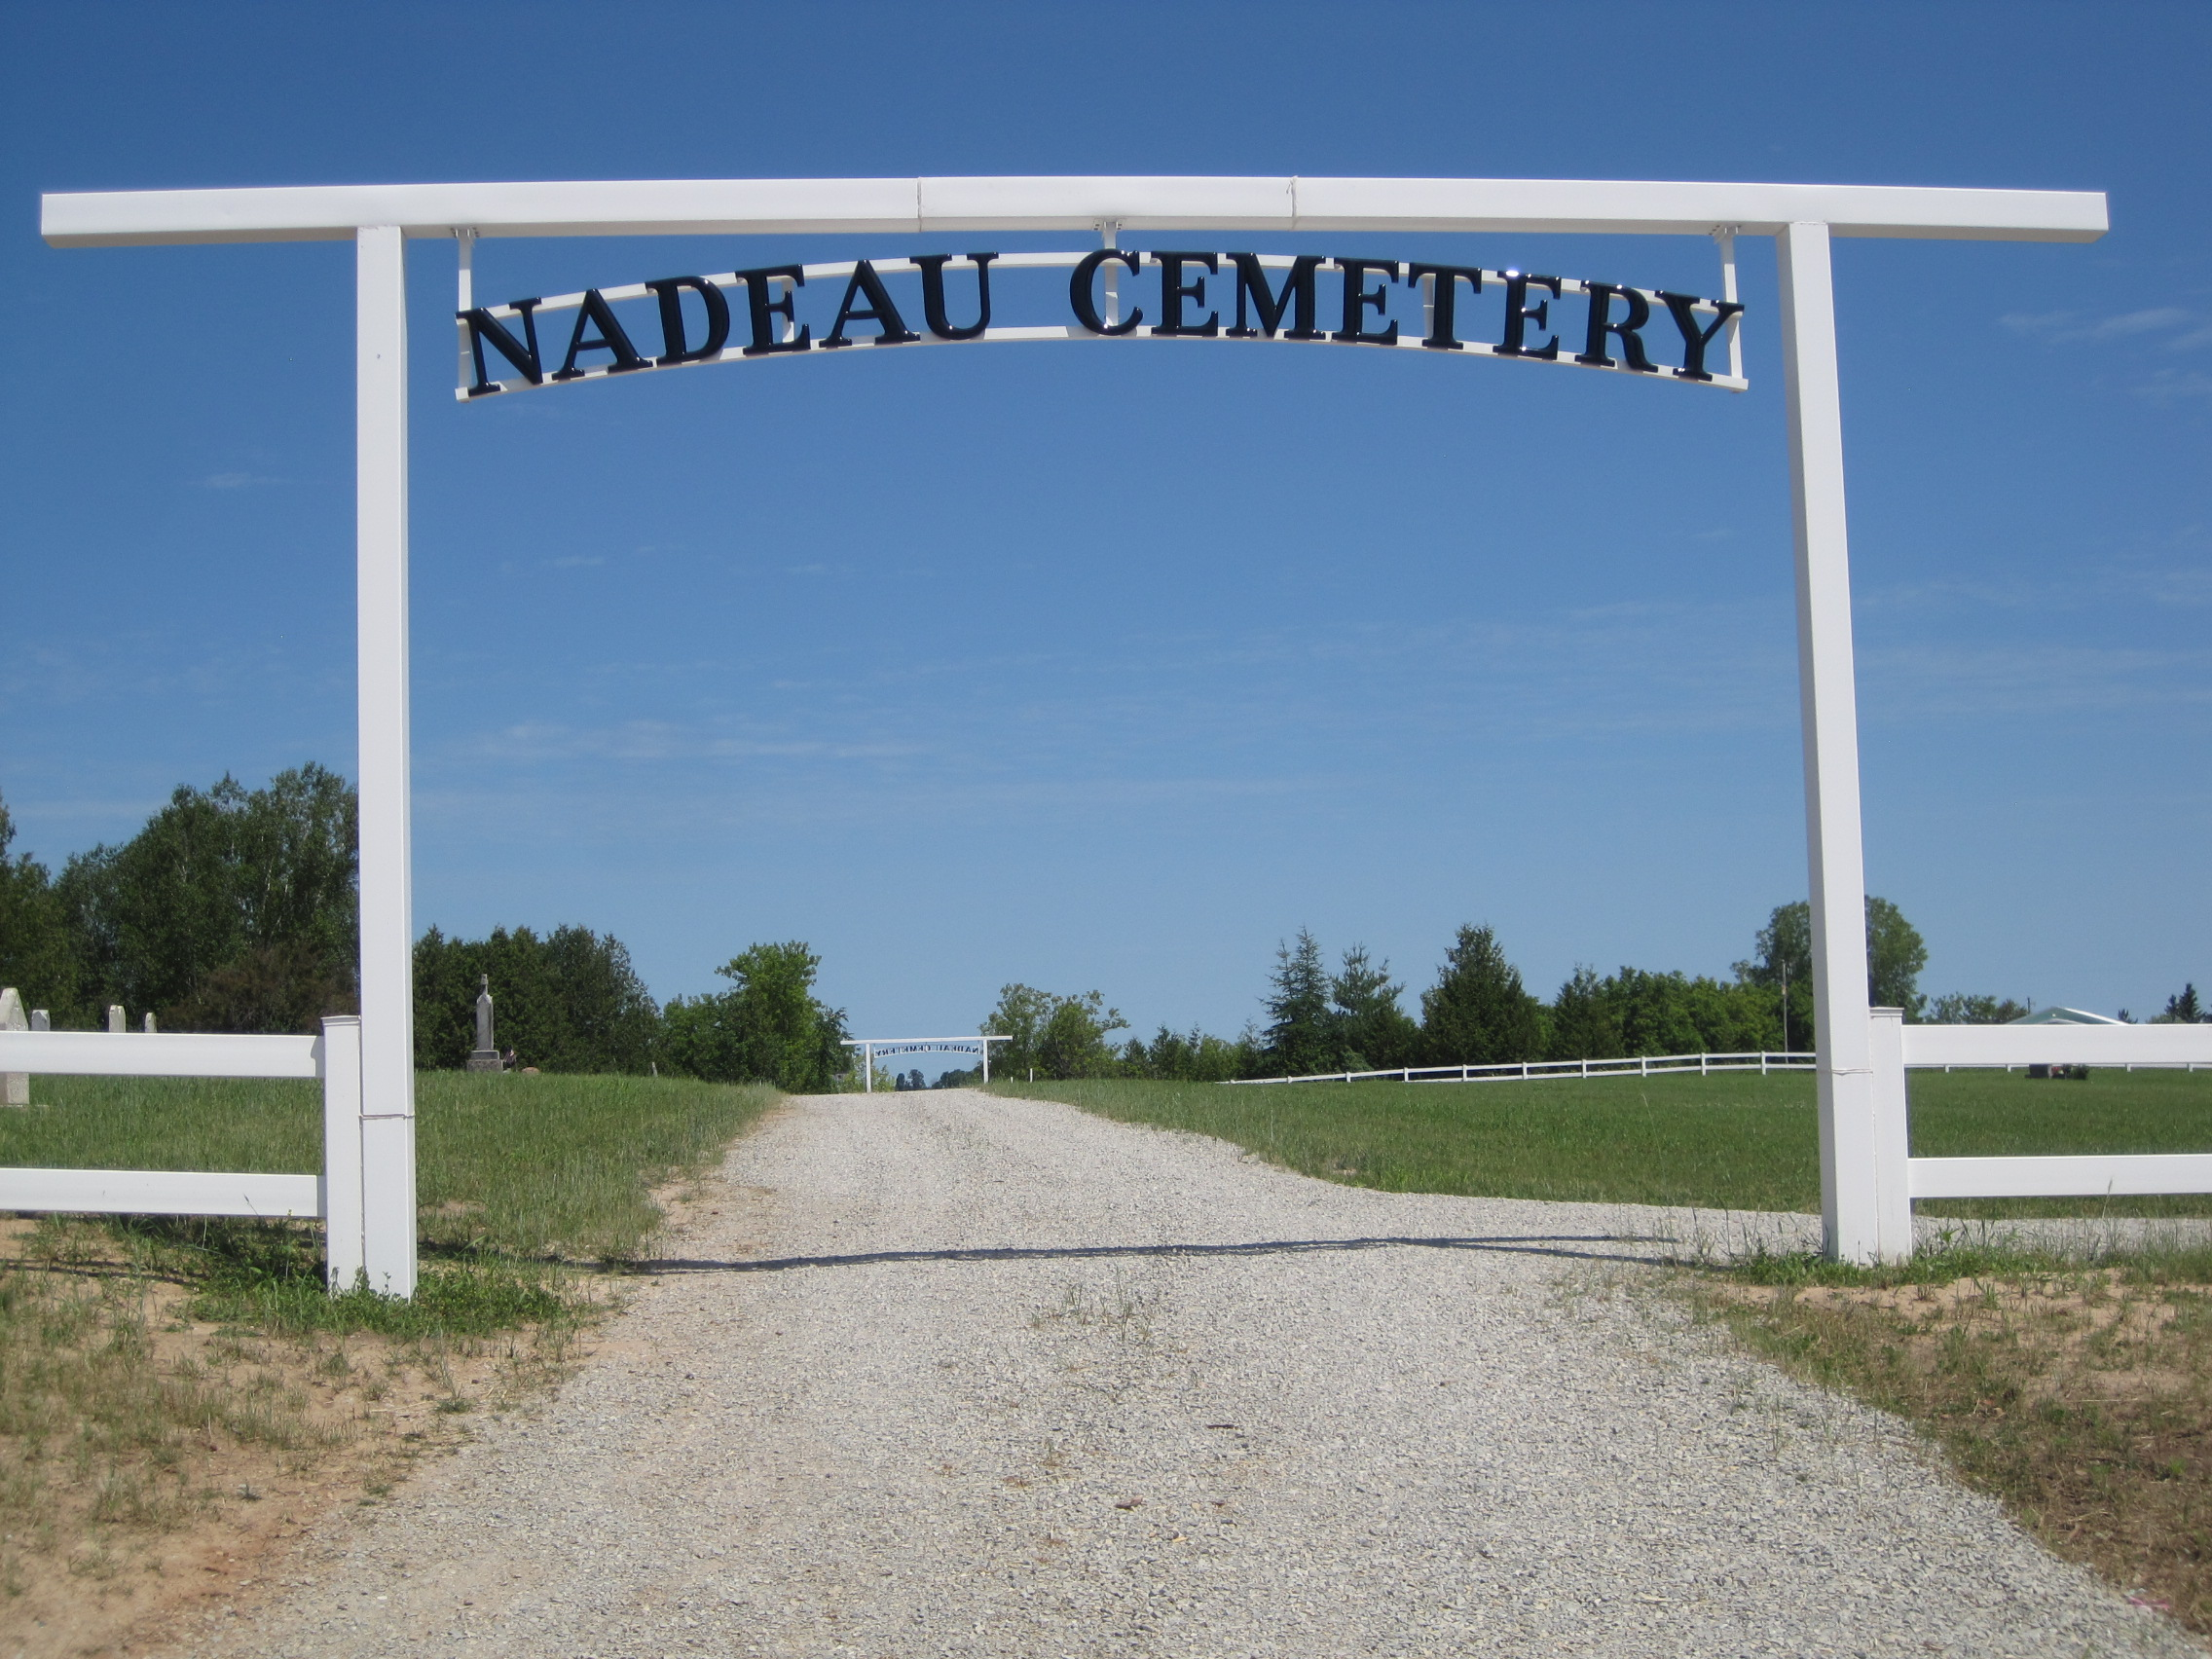 Nadeau Township Cemetery